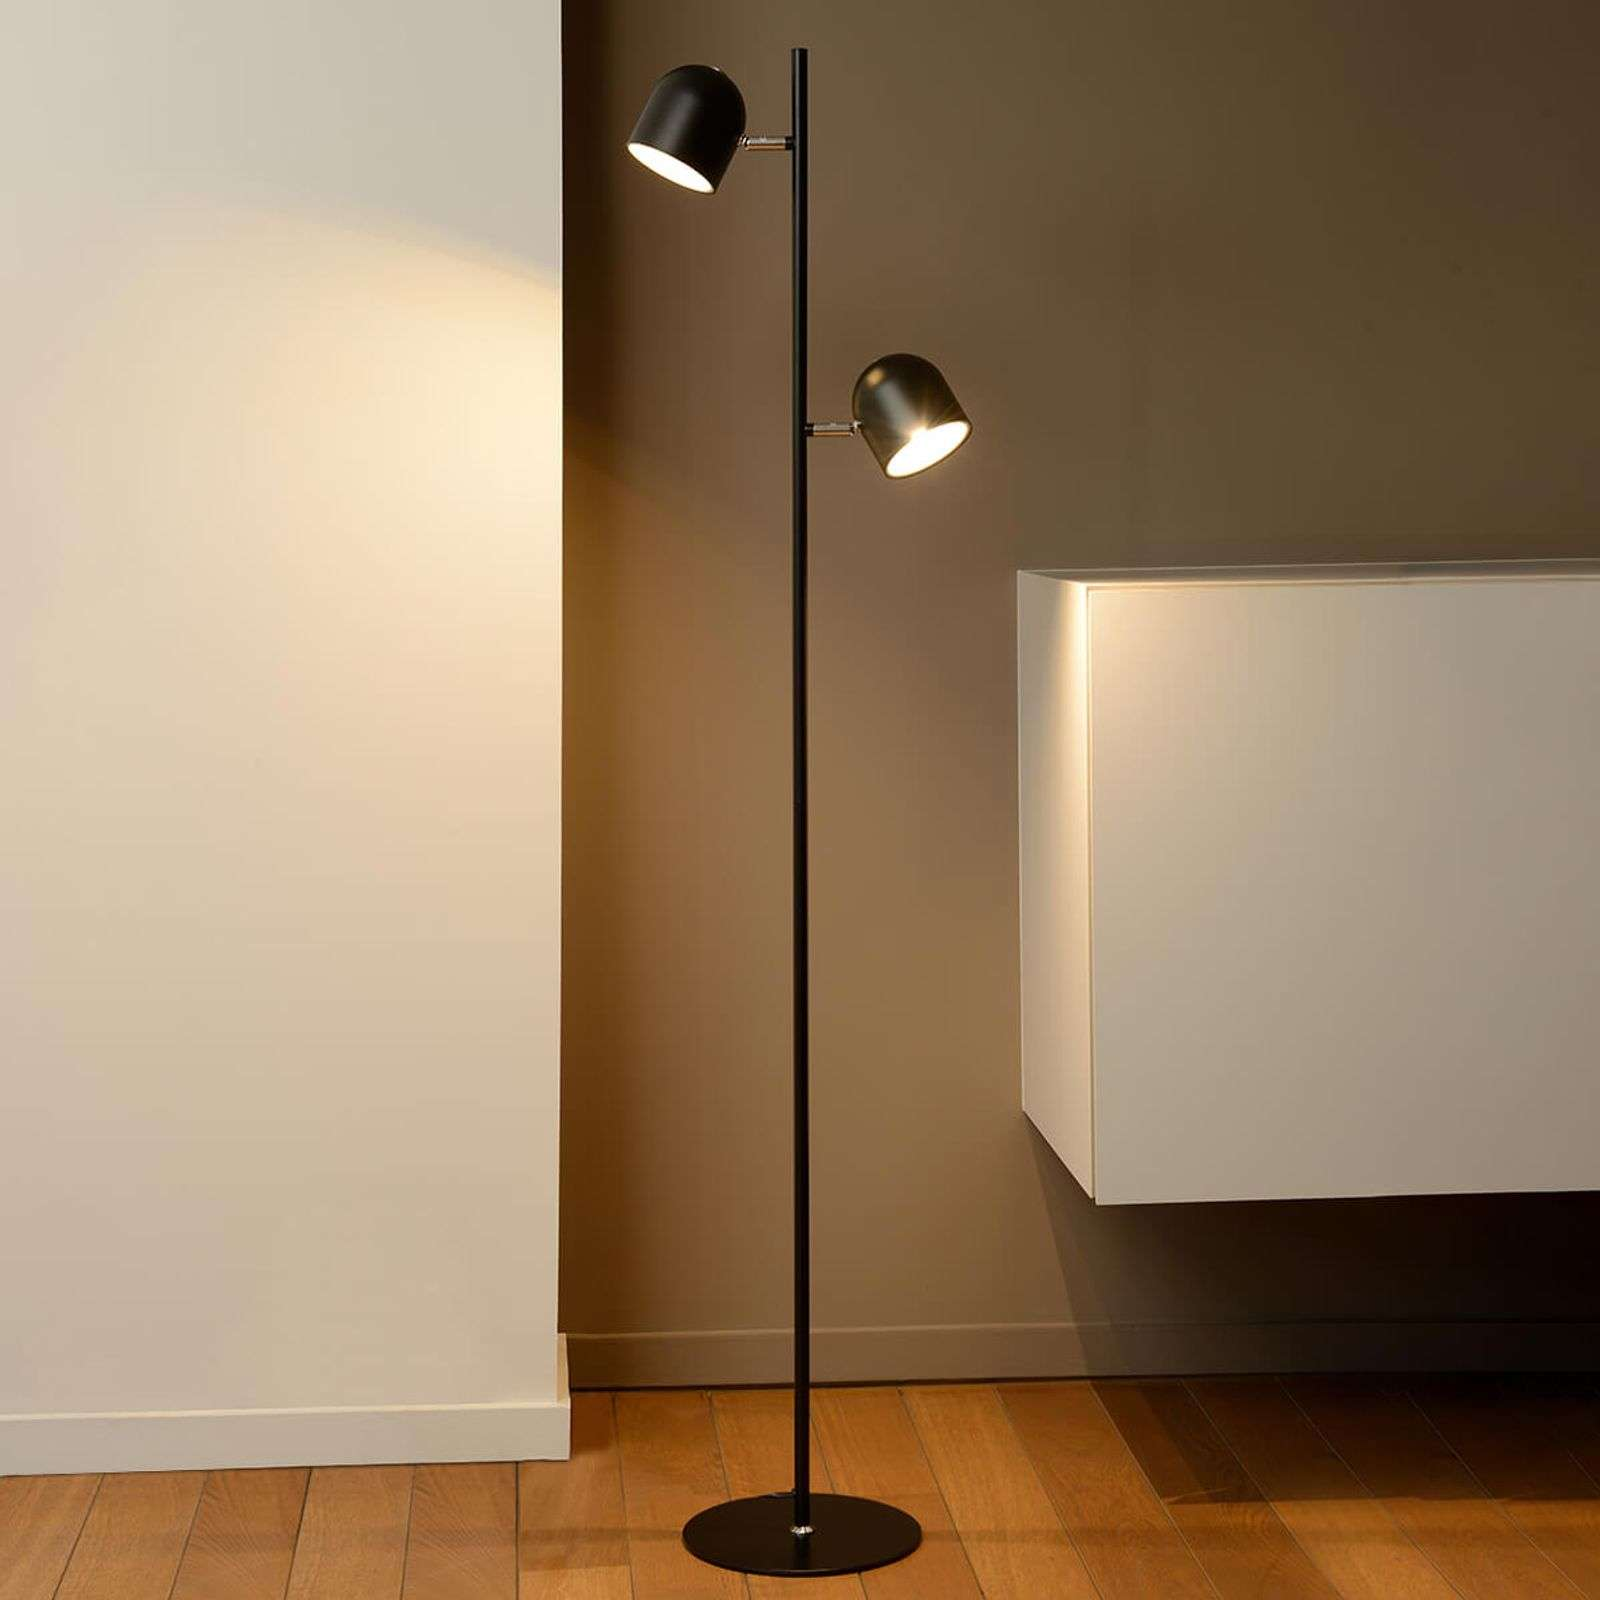 Lampadaire LED dimmable Skanska en noir